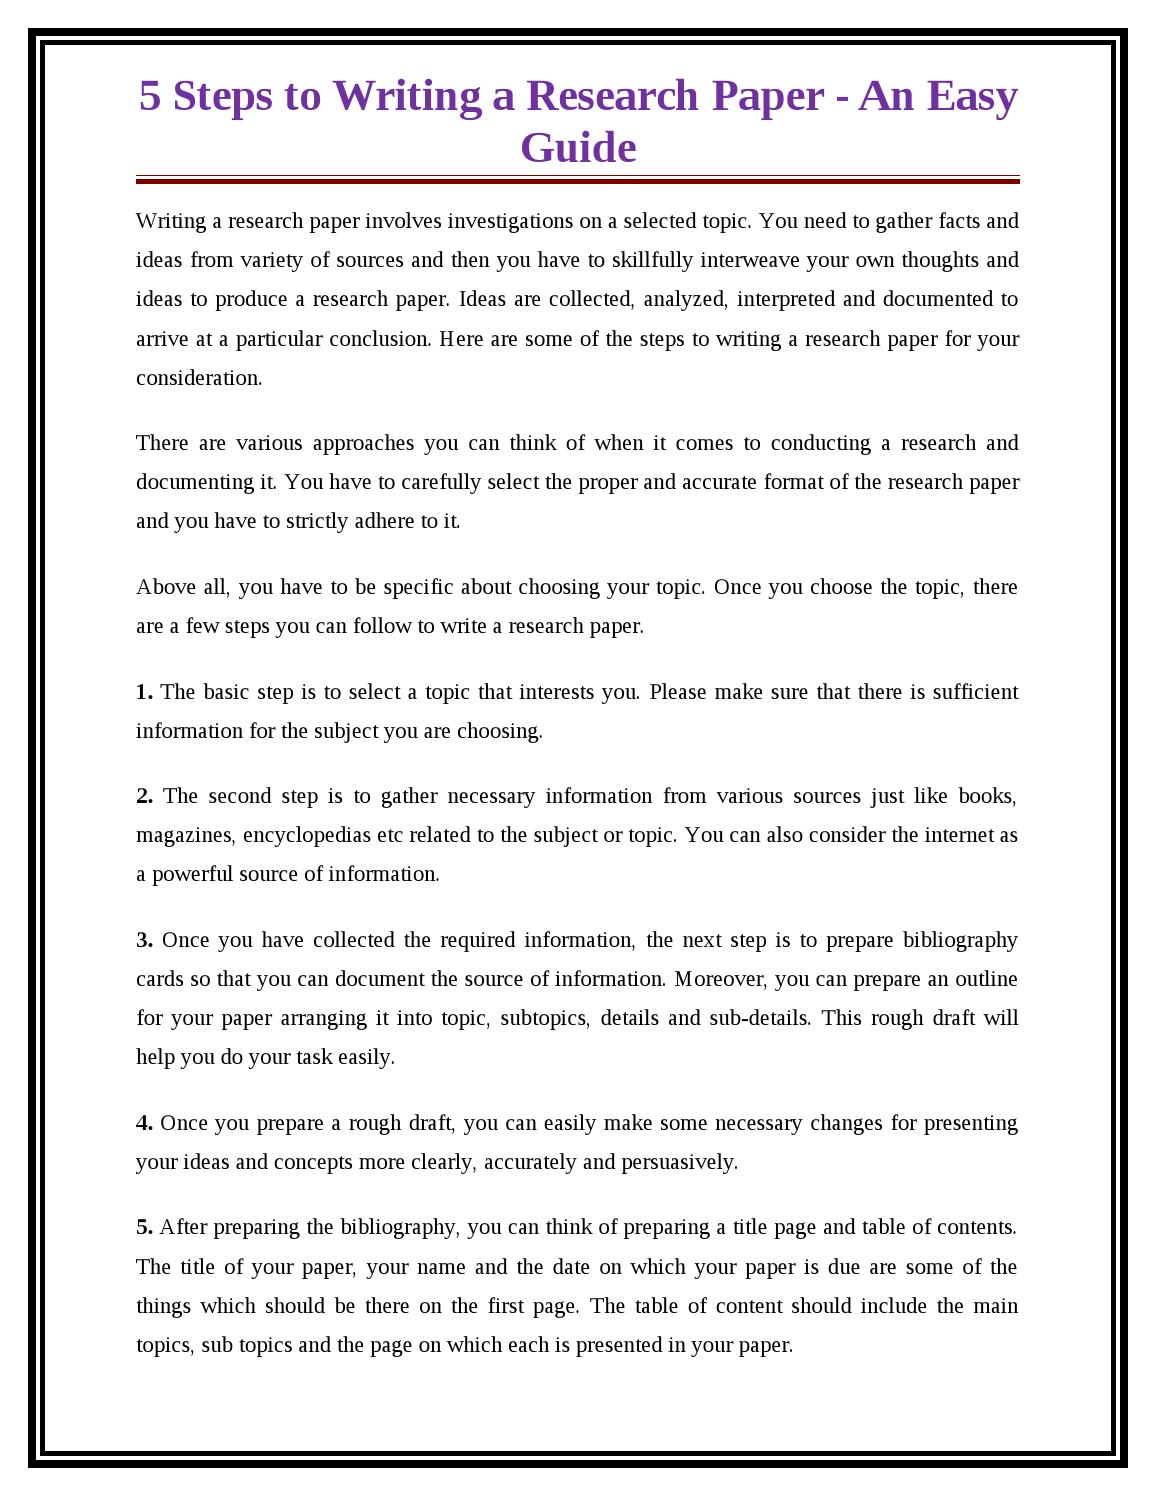 003 How To Make Research Paper Page 1 Incredible A Interesting Thesis Flow Full